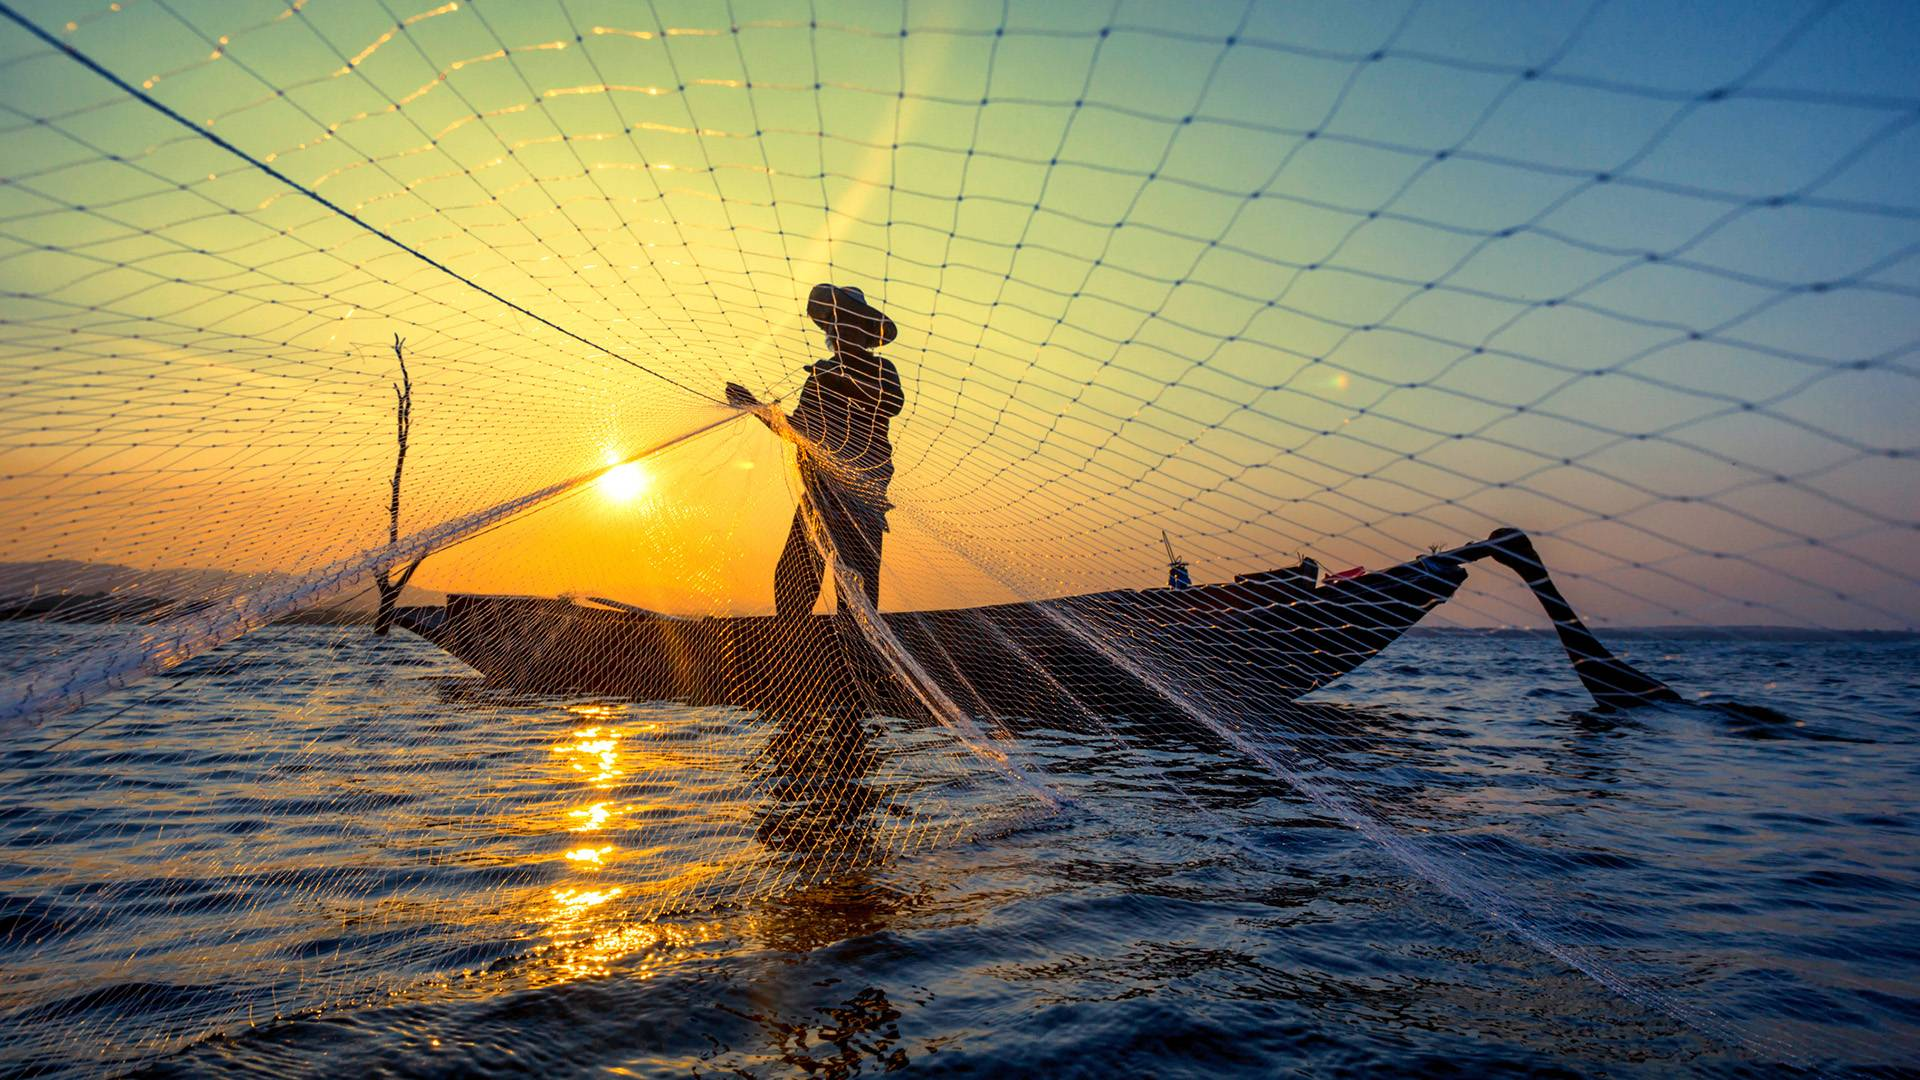 Fisherman throwing a net with the sunset behind him